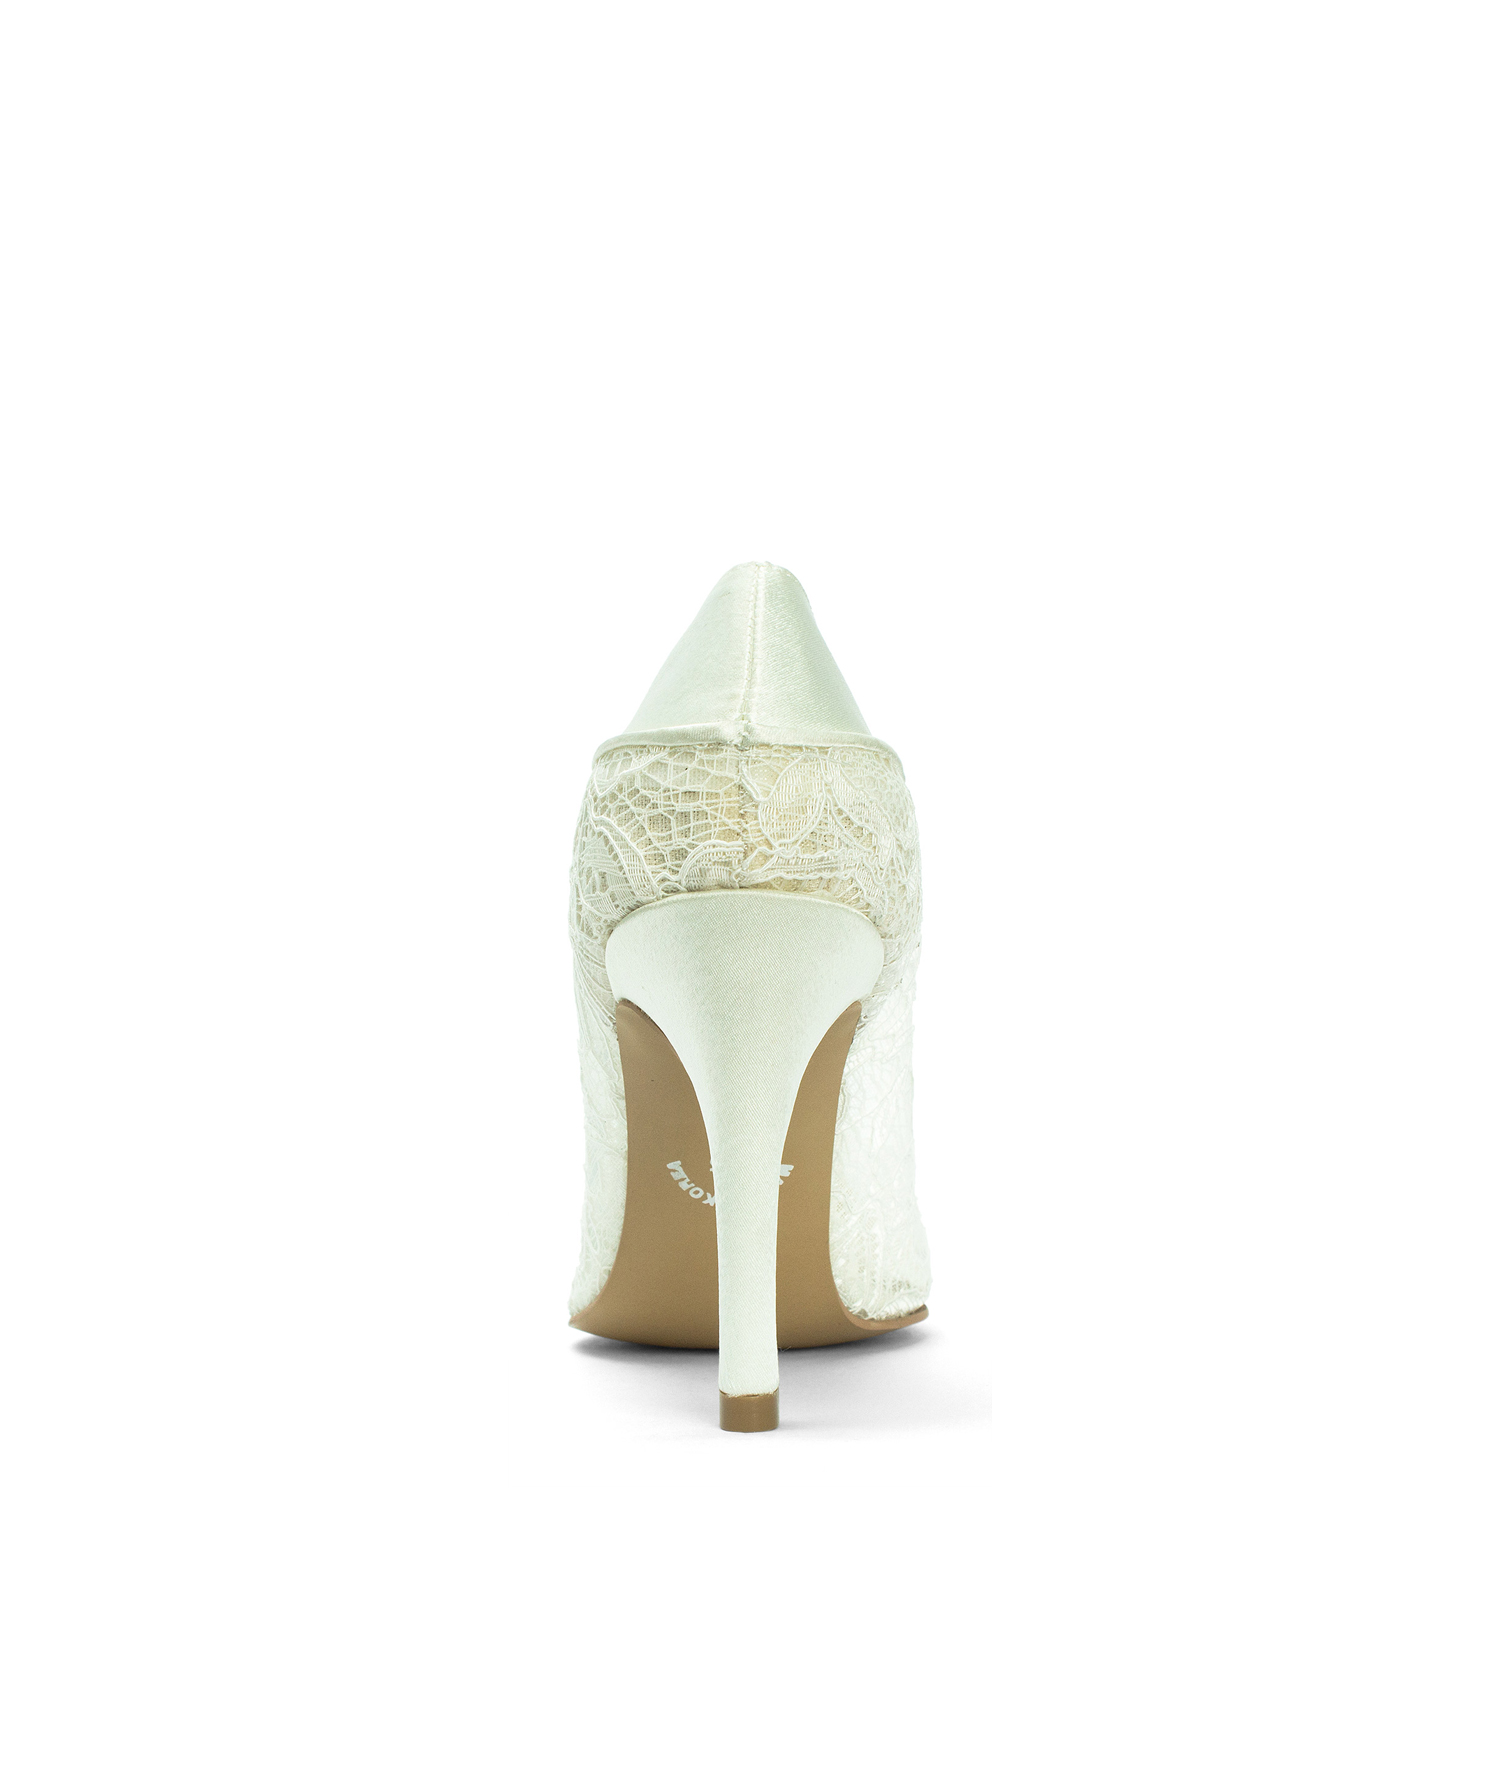 5a9033dafd6 Ivory Lace Wedding Heels with Satin Bow - annakastleshoes.com